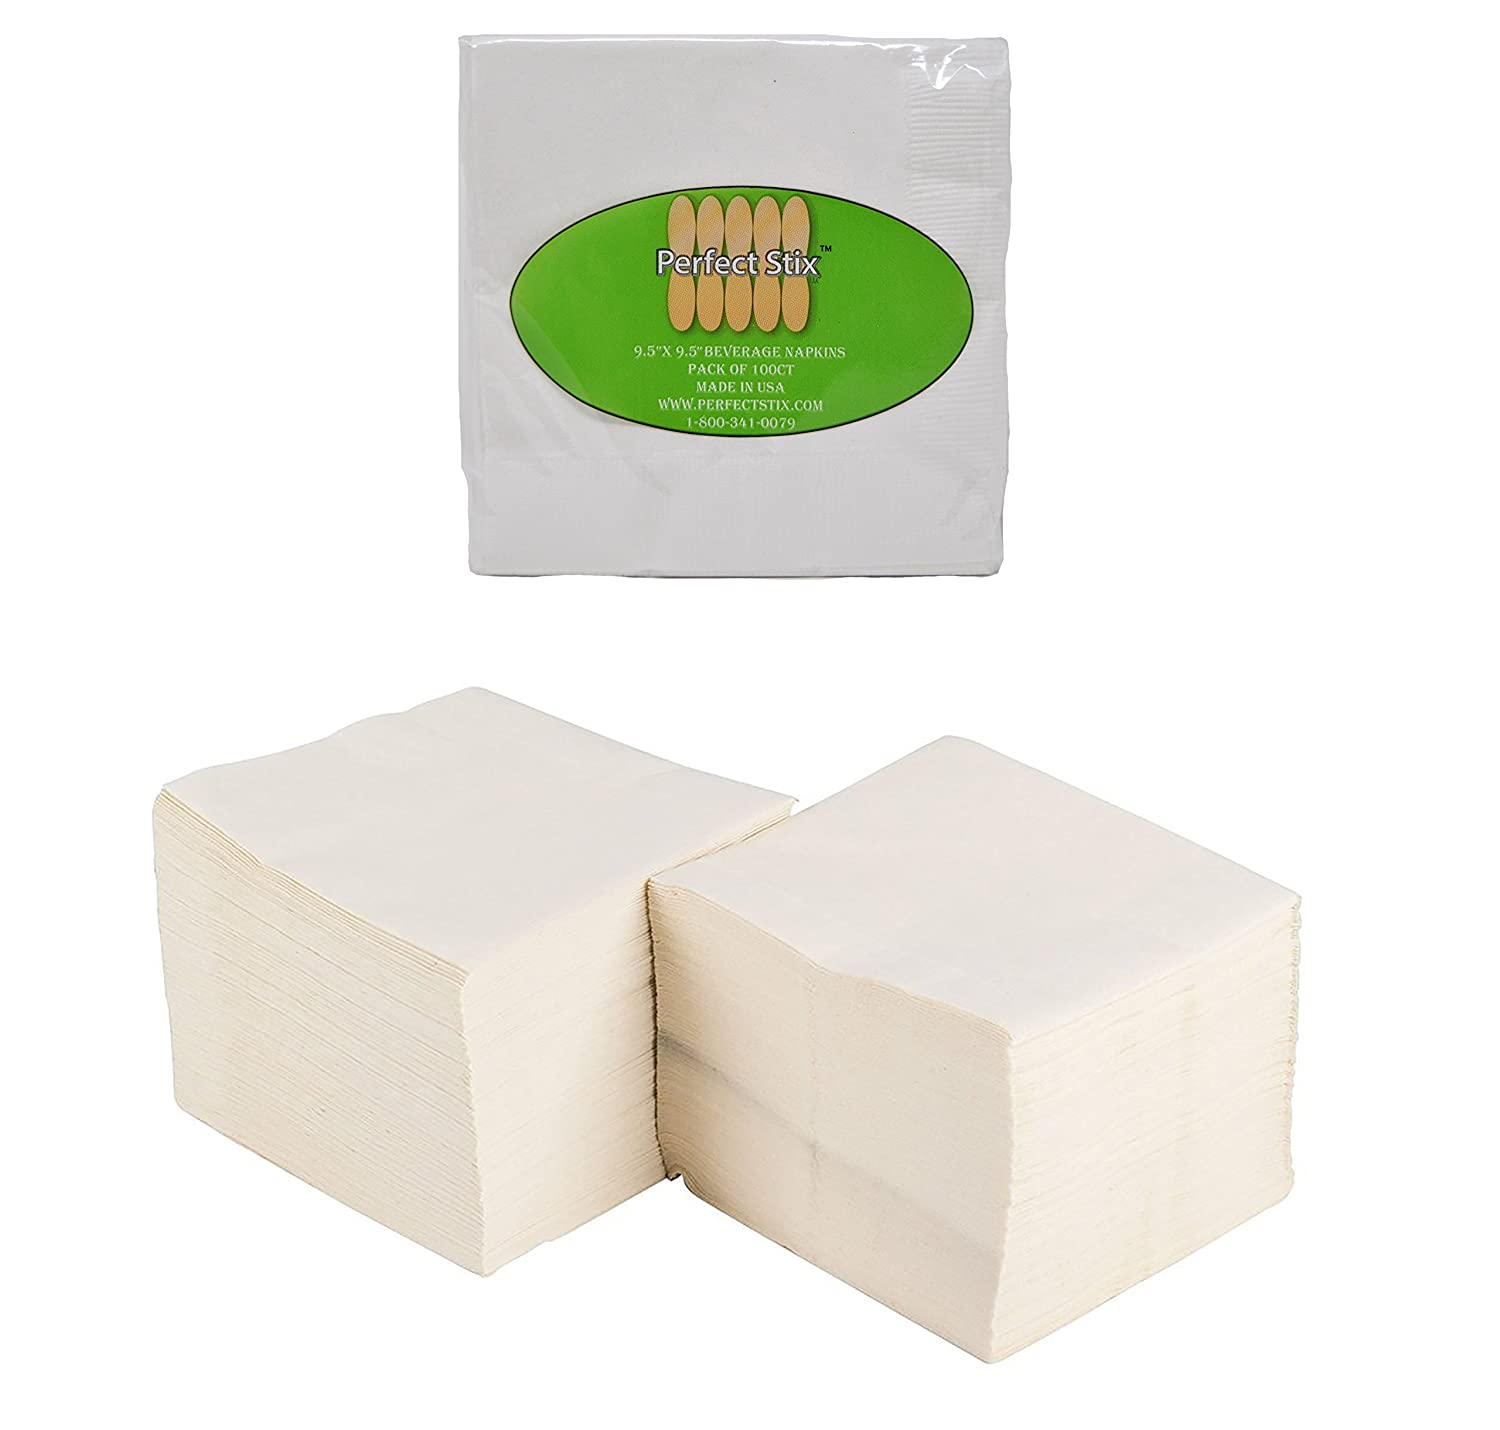 2 Ply White Beverage Napkins (Pack of 100ct)